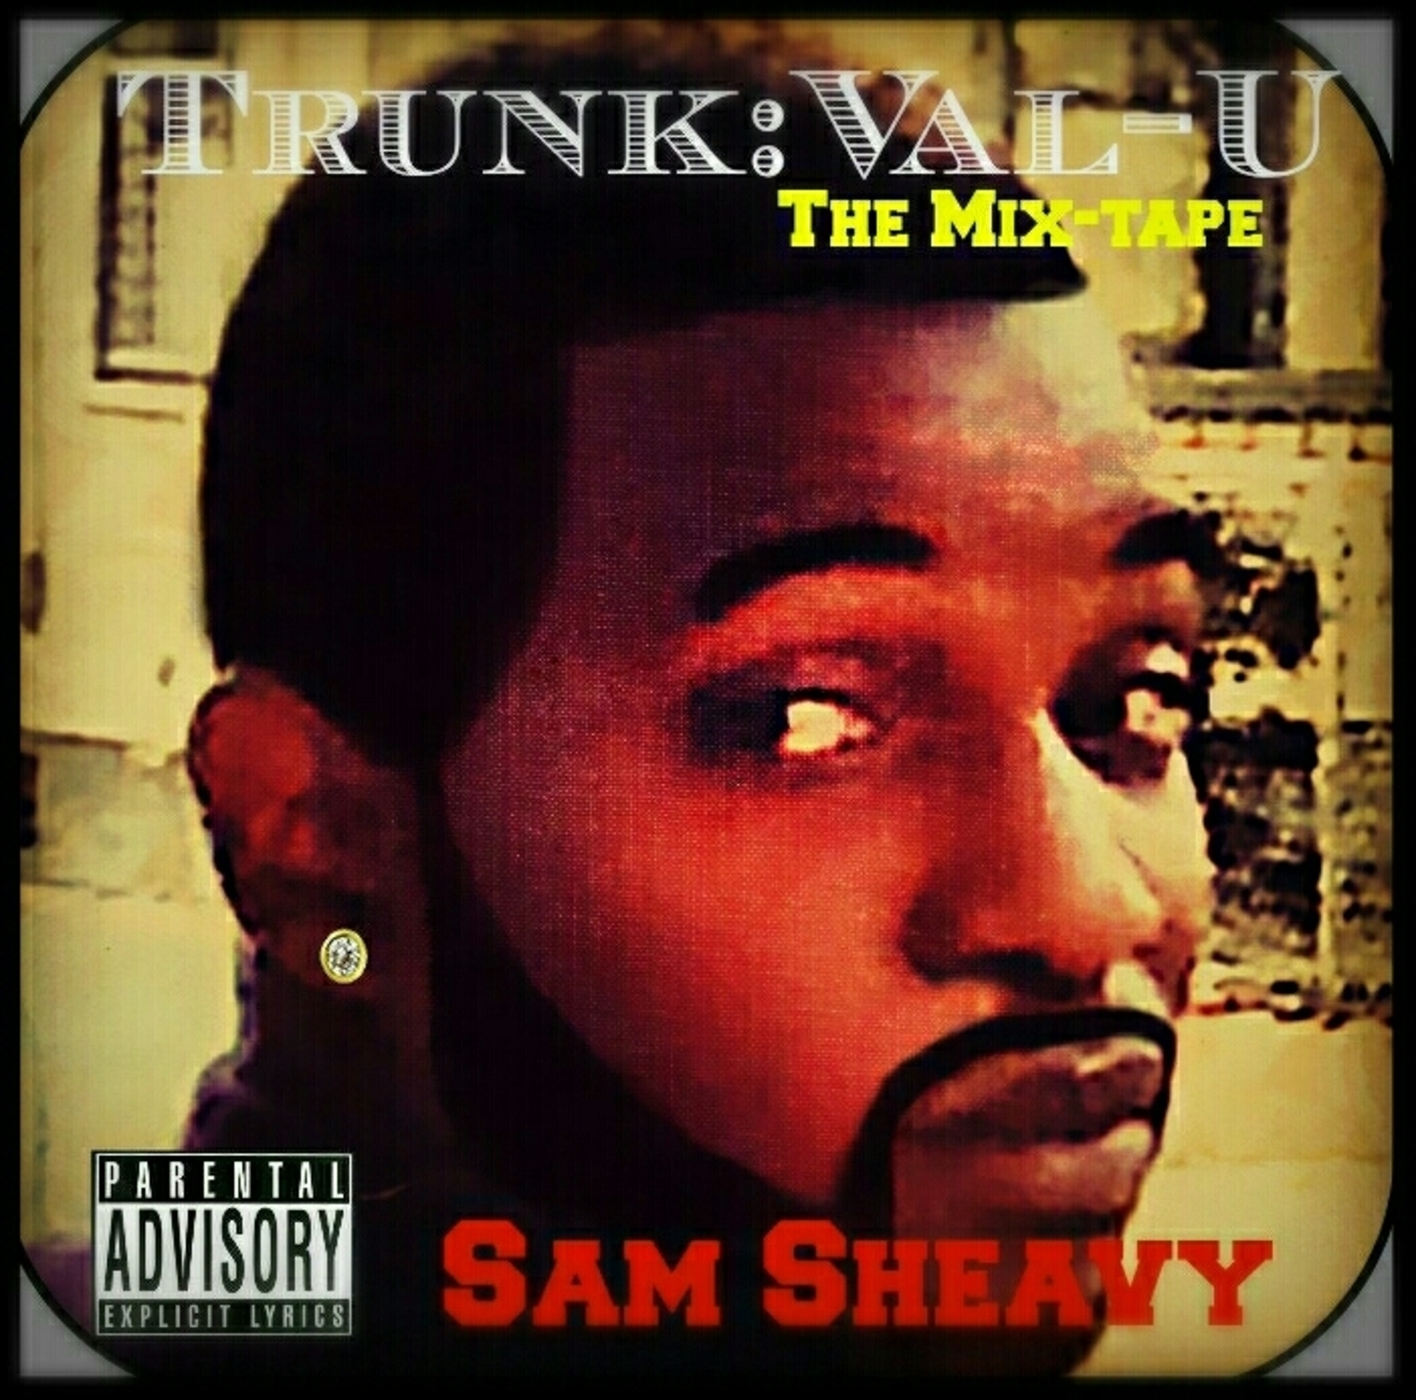 Sam Sheavy - TRUNK:VAL-U